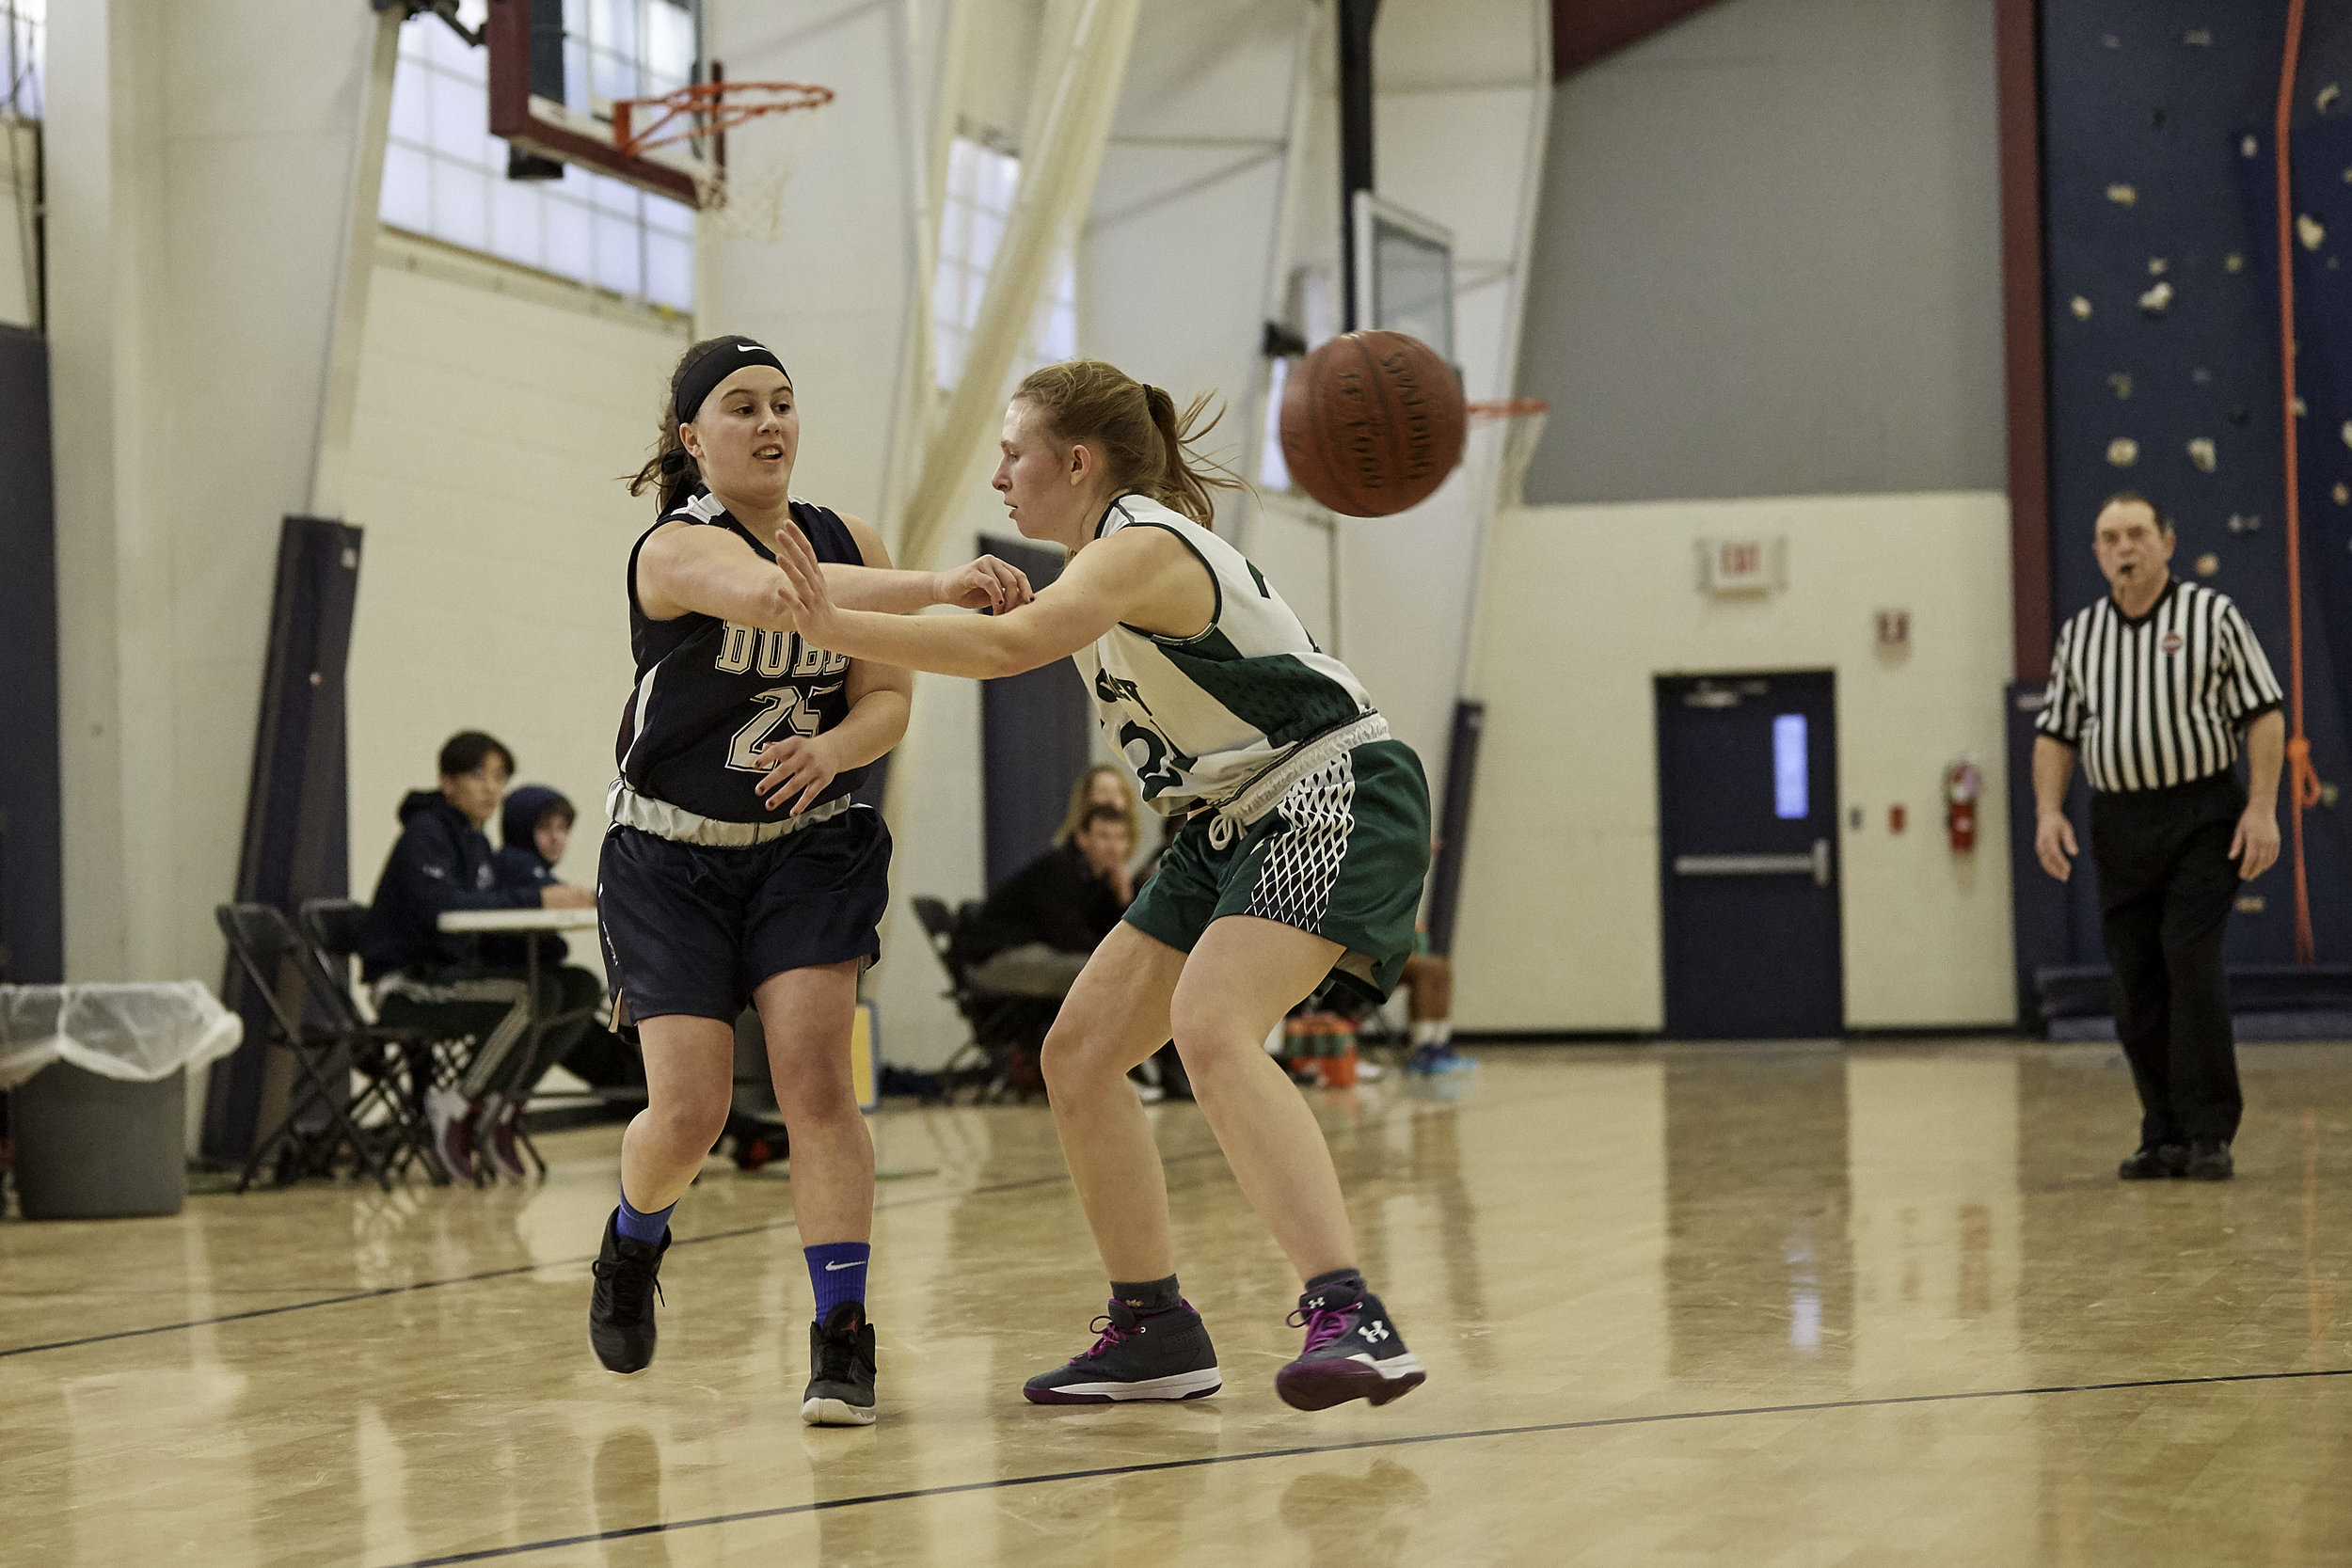 Basketball vs Putney School, February 9, 2019 - 167166.jpg